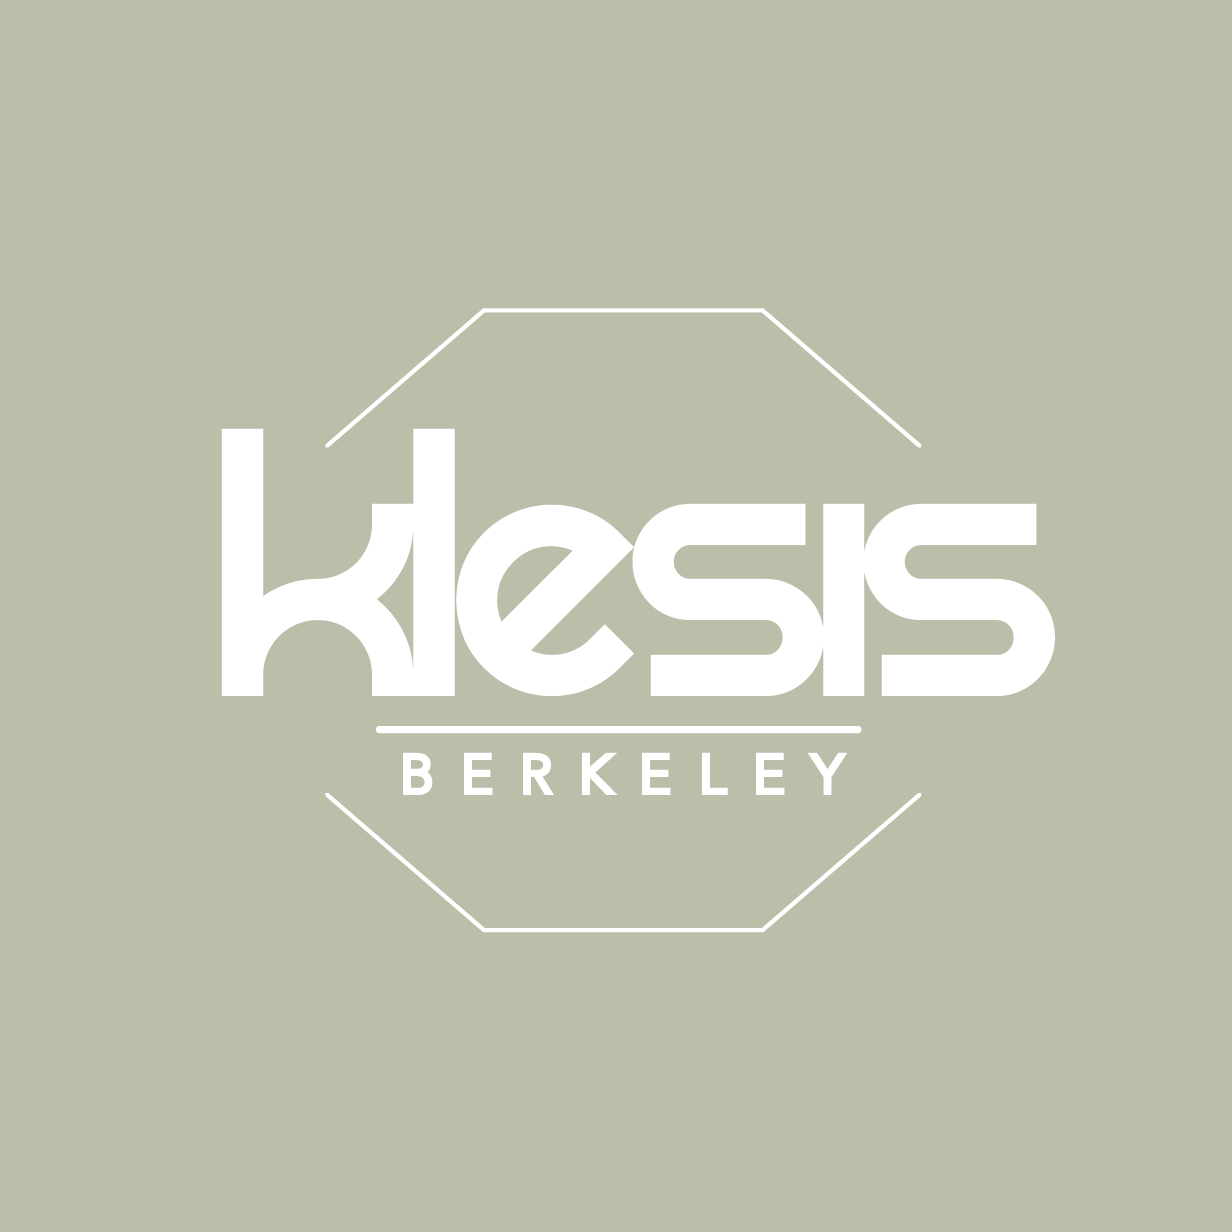 klesis_college_sunday_service.png